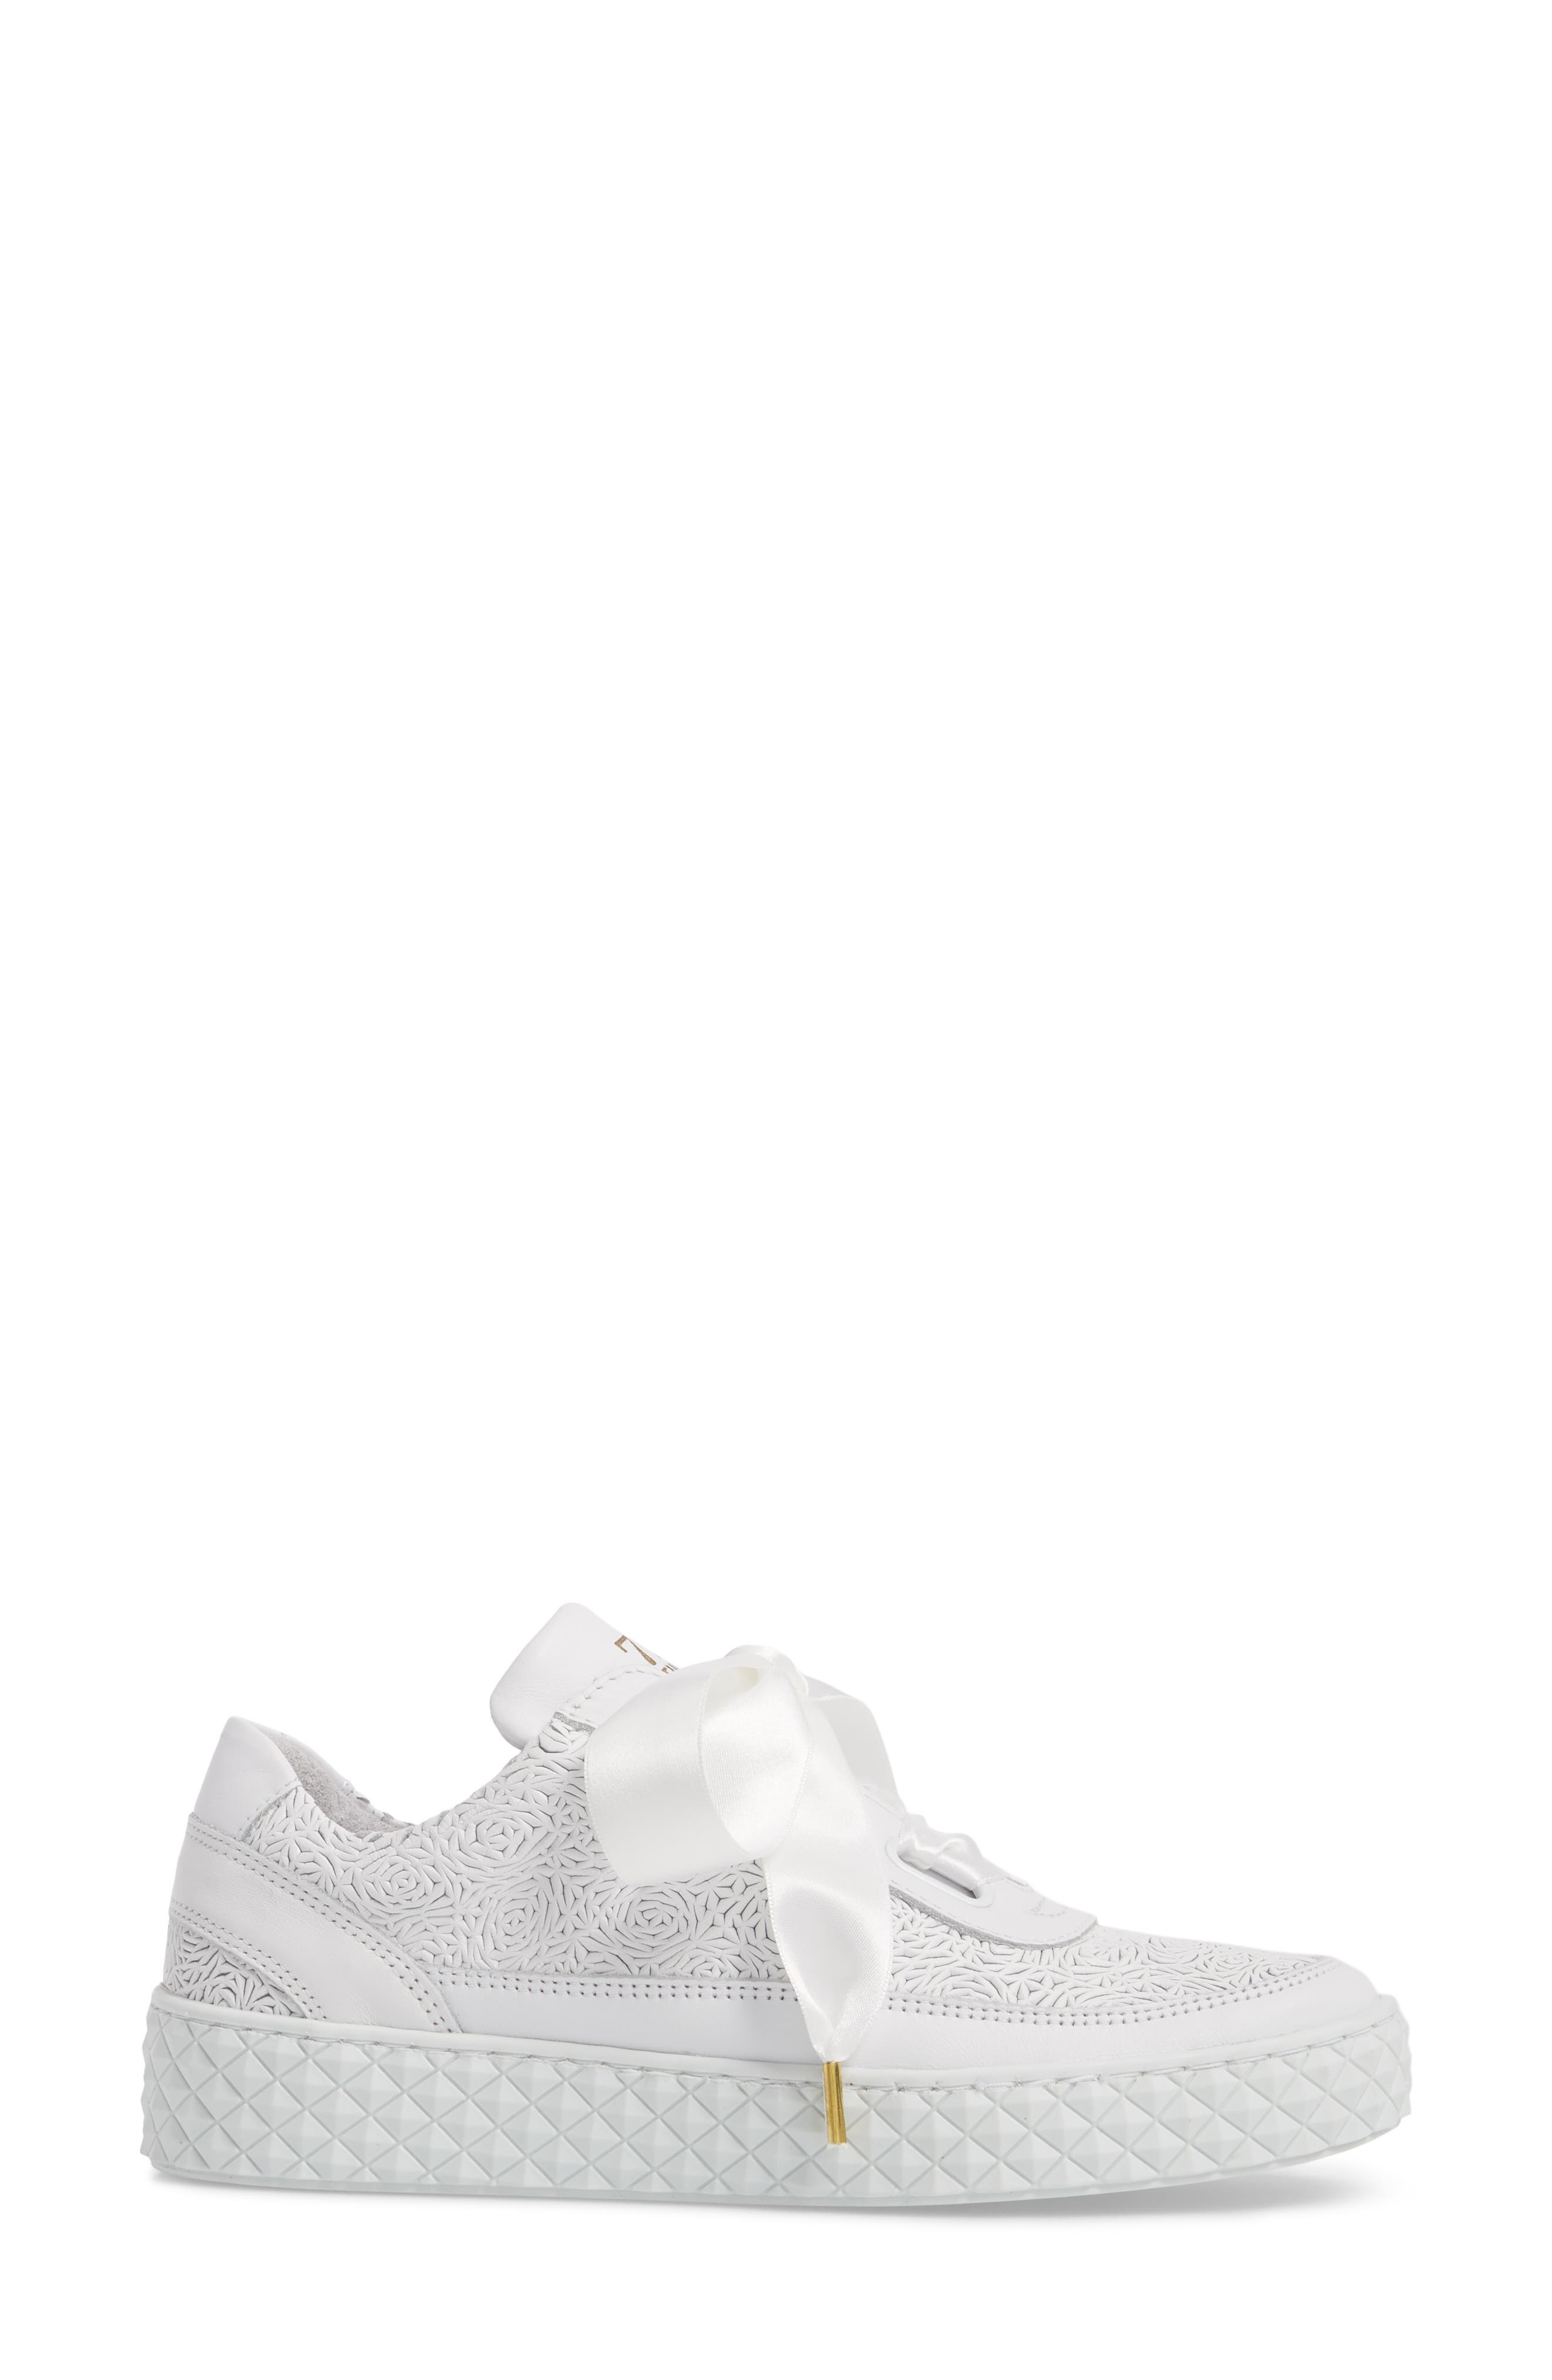 Montreal Sneaker,                             Alternate thumbnail 3, color,                             White Leather